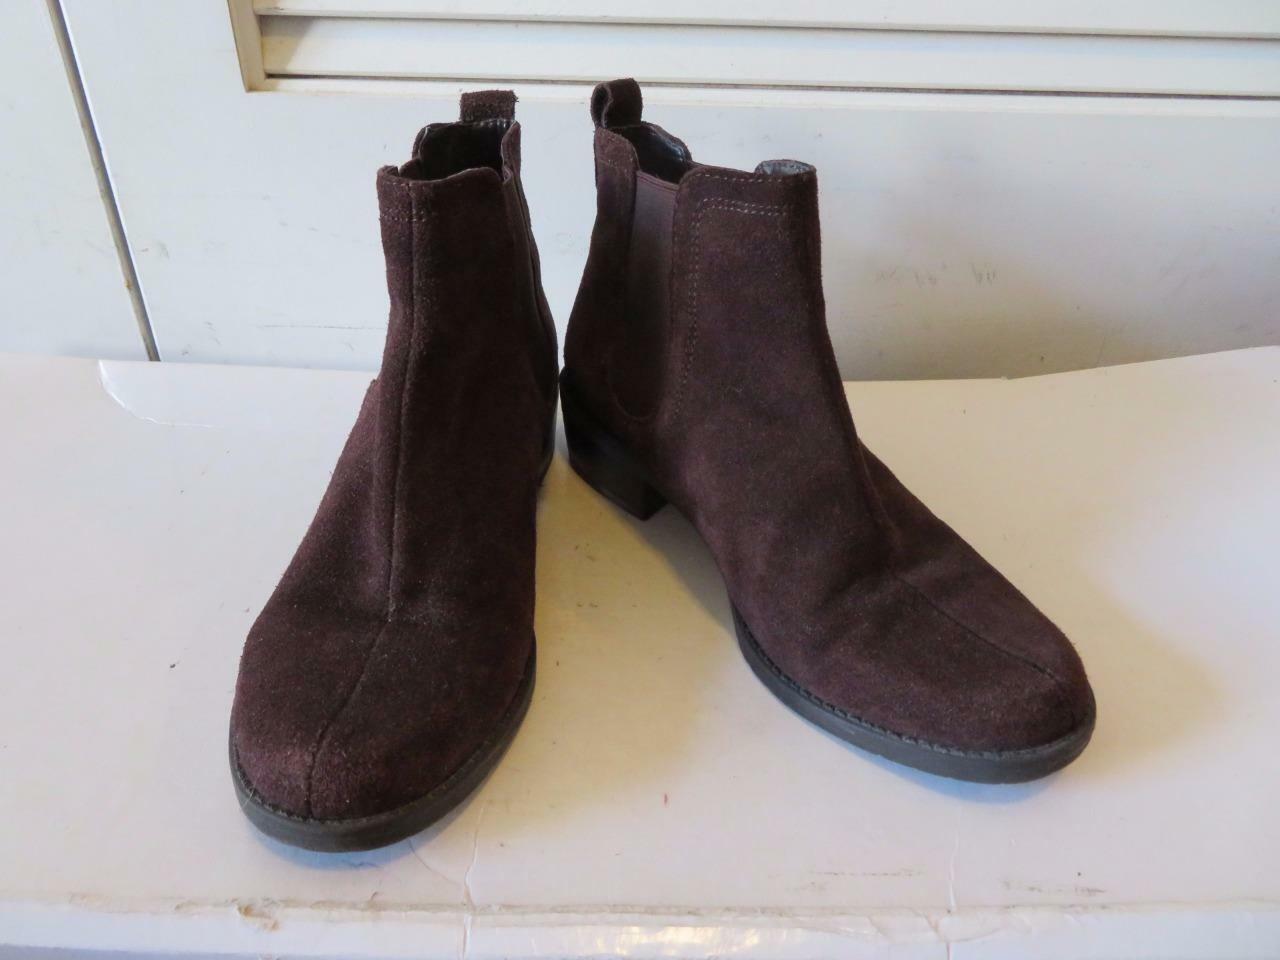 WOMENS ANNE KLEIN BROWN SUEDE ELASTIC PULL-ON ANKLE BOOTS SIZE 7.5